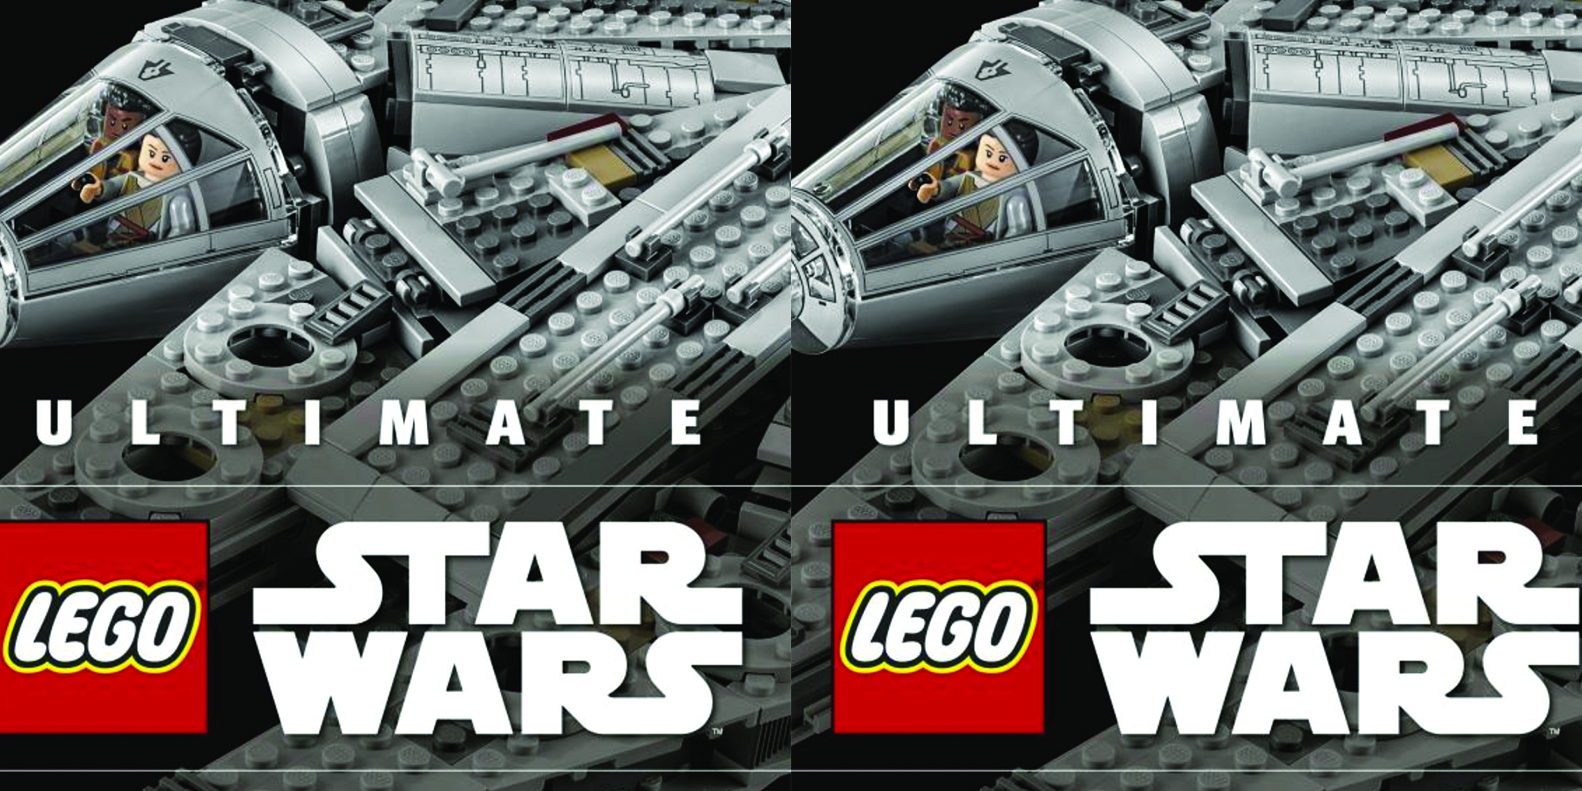 Ultimate LEGO Star Wars book takes you through the coolest builds in the galaxy for $20